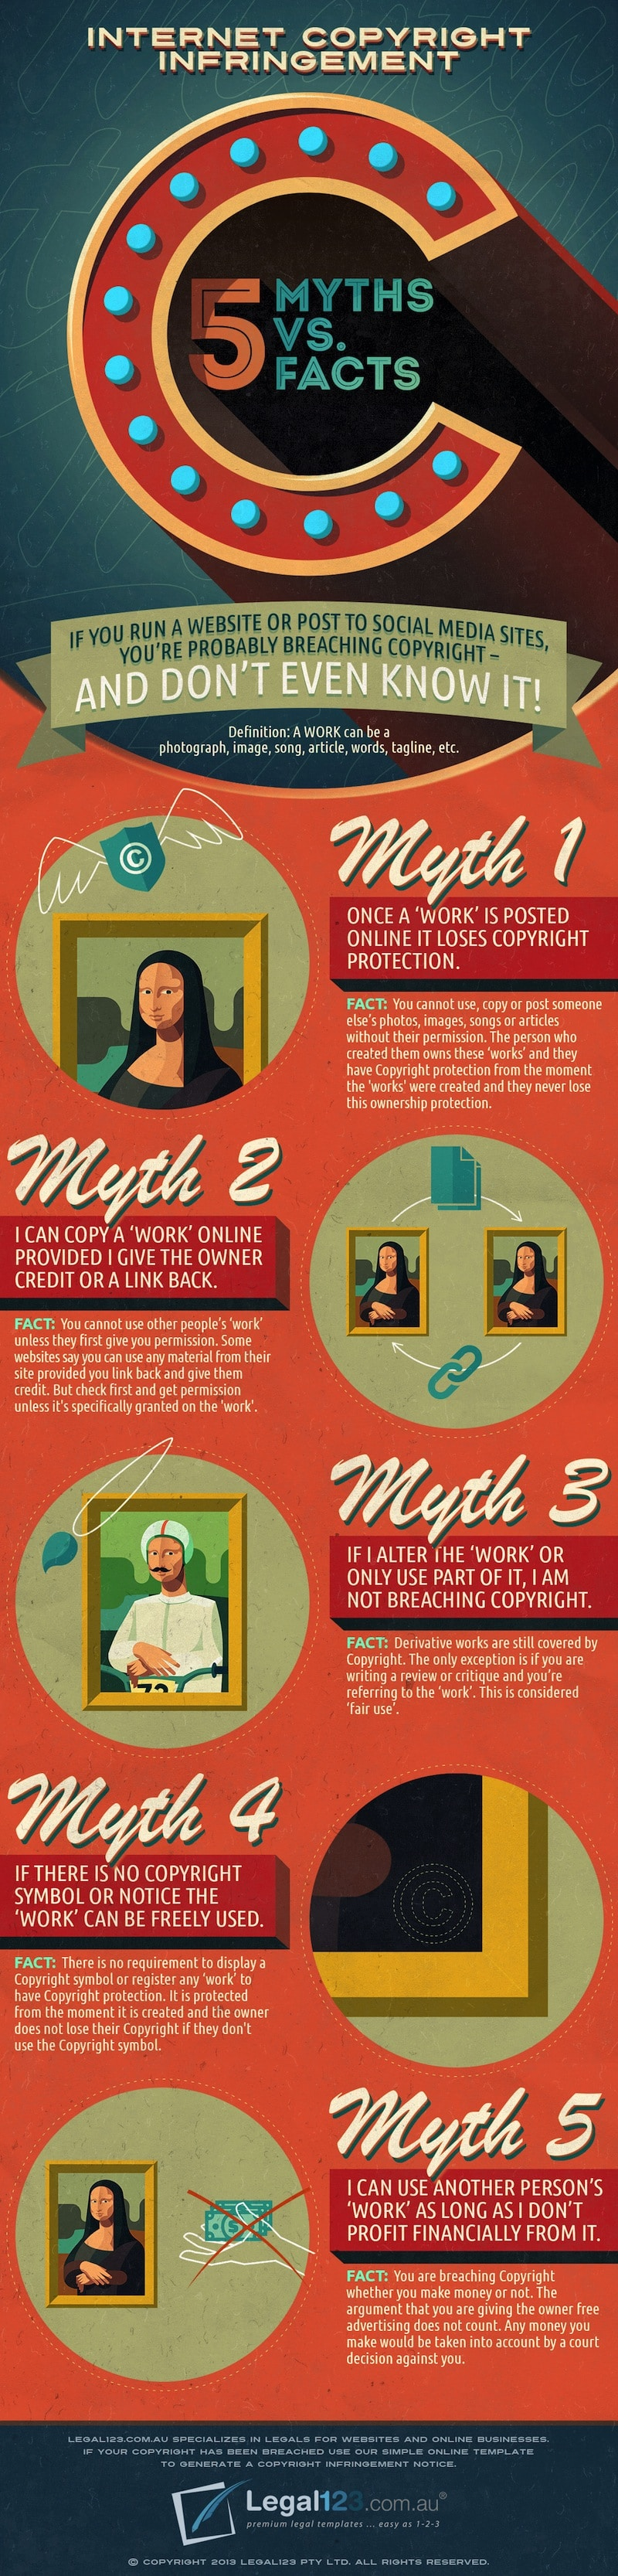 copyright infringement infographic